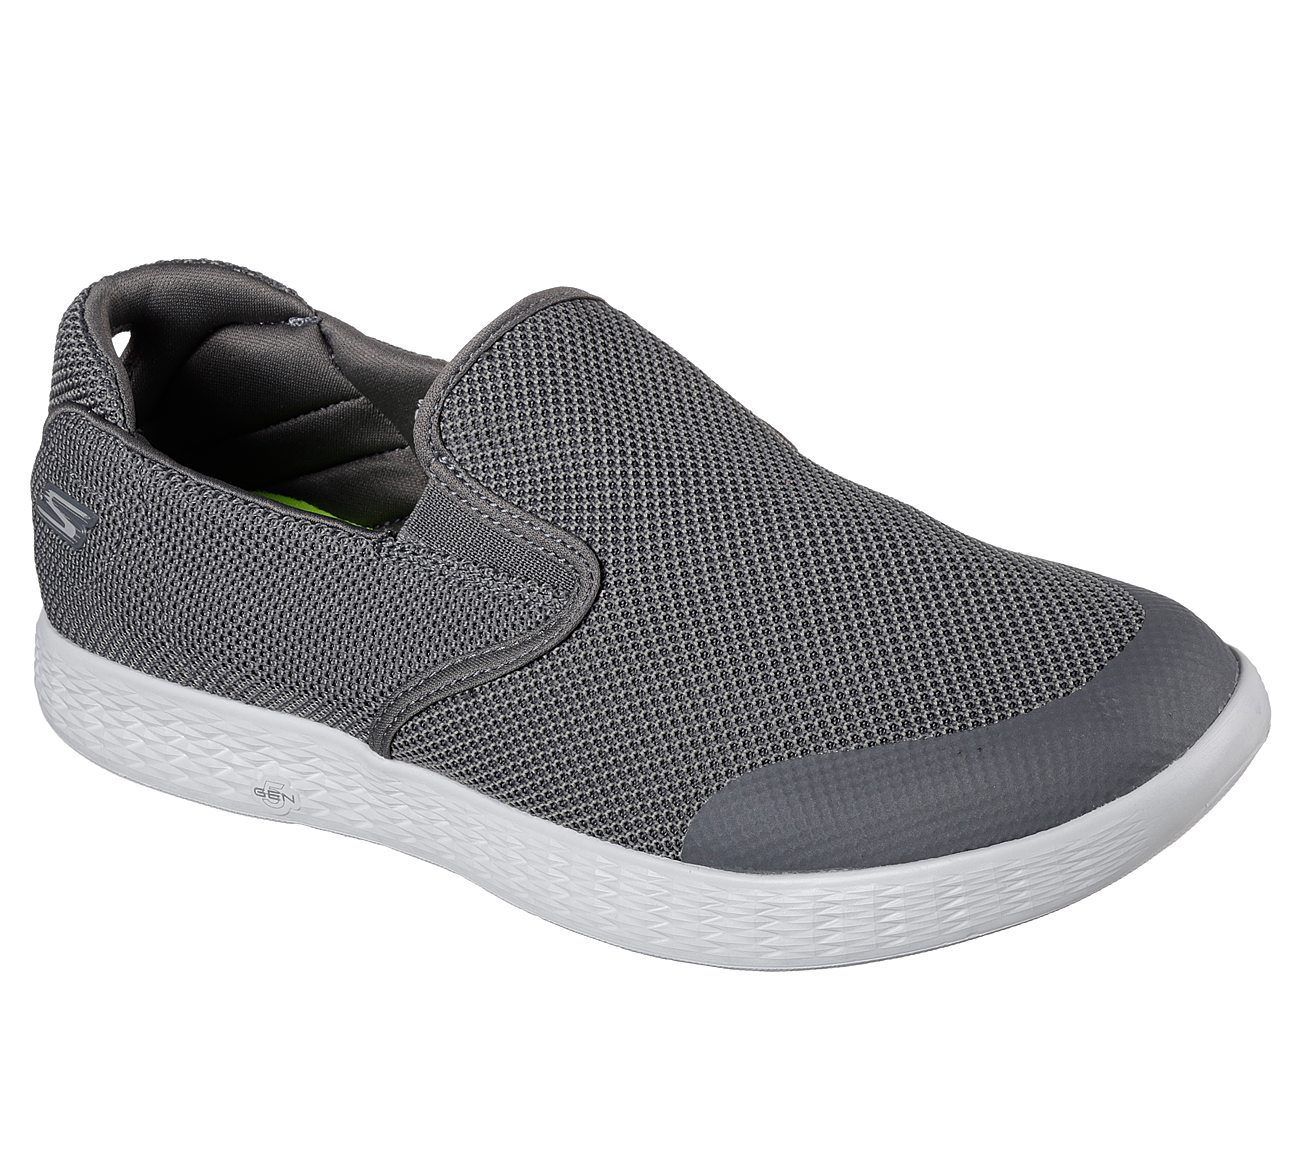 Skechers Fusion Slip On Shoes